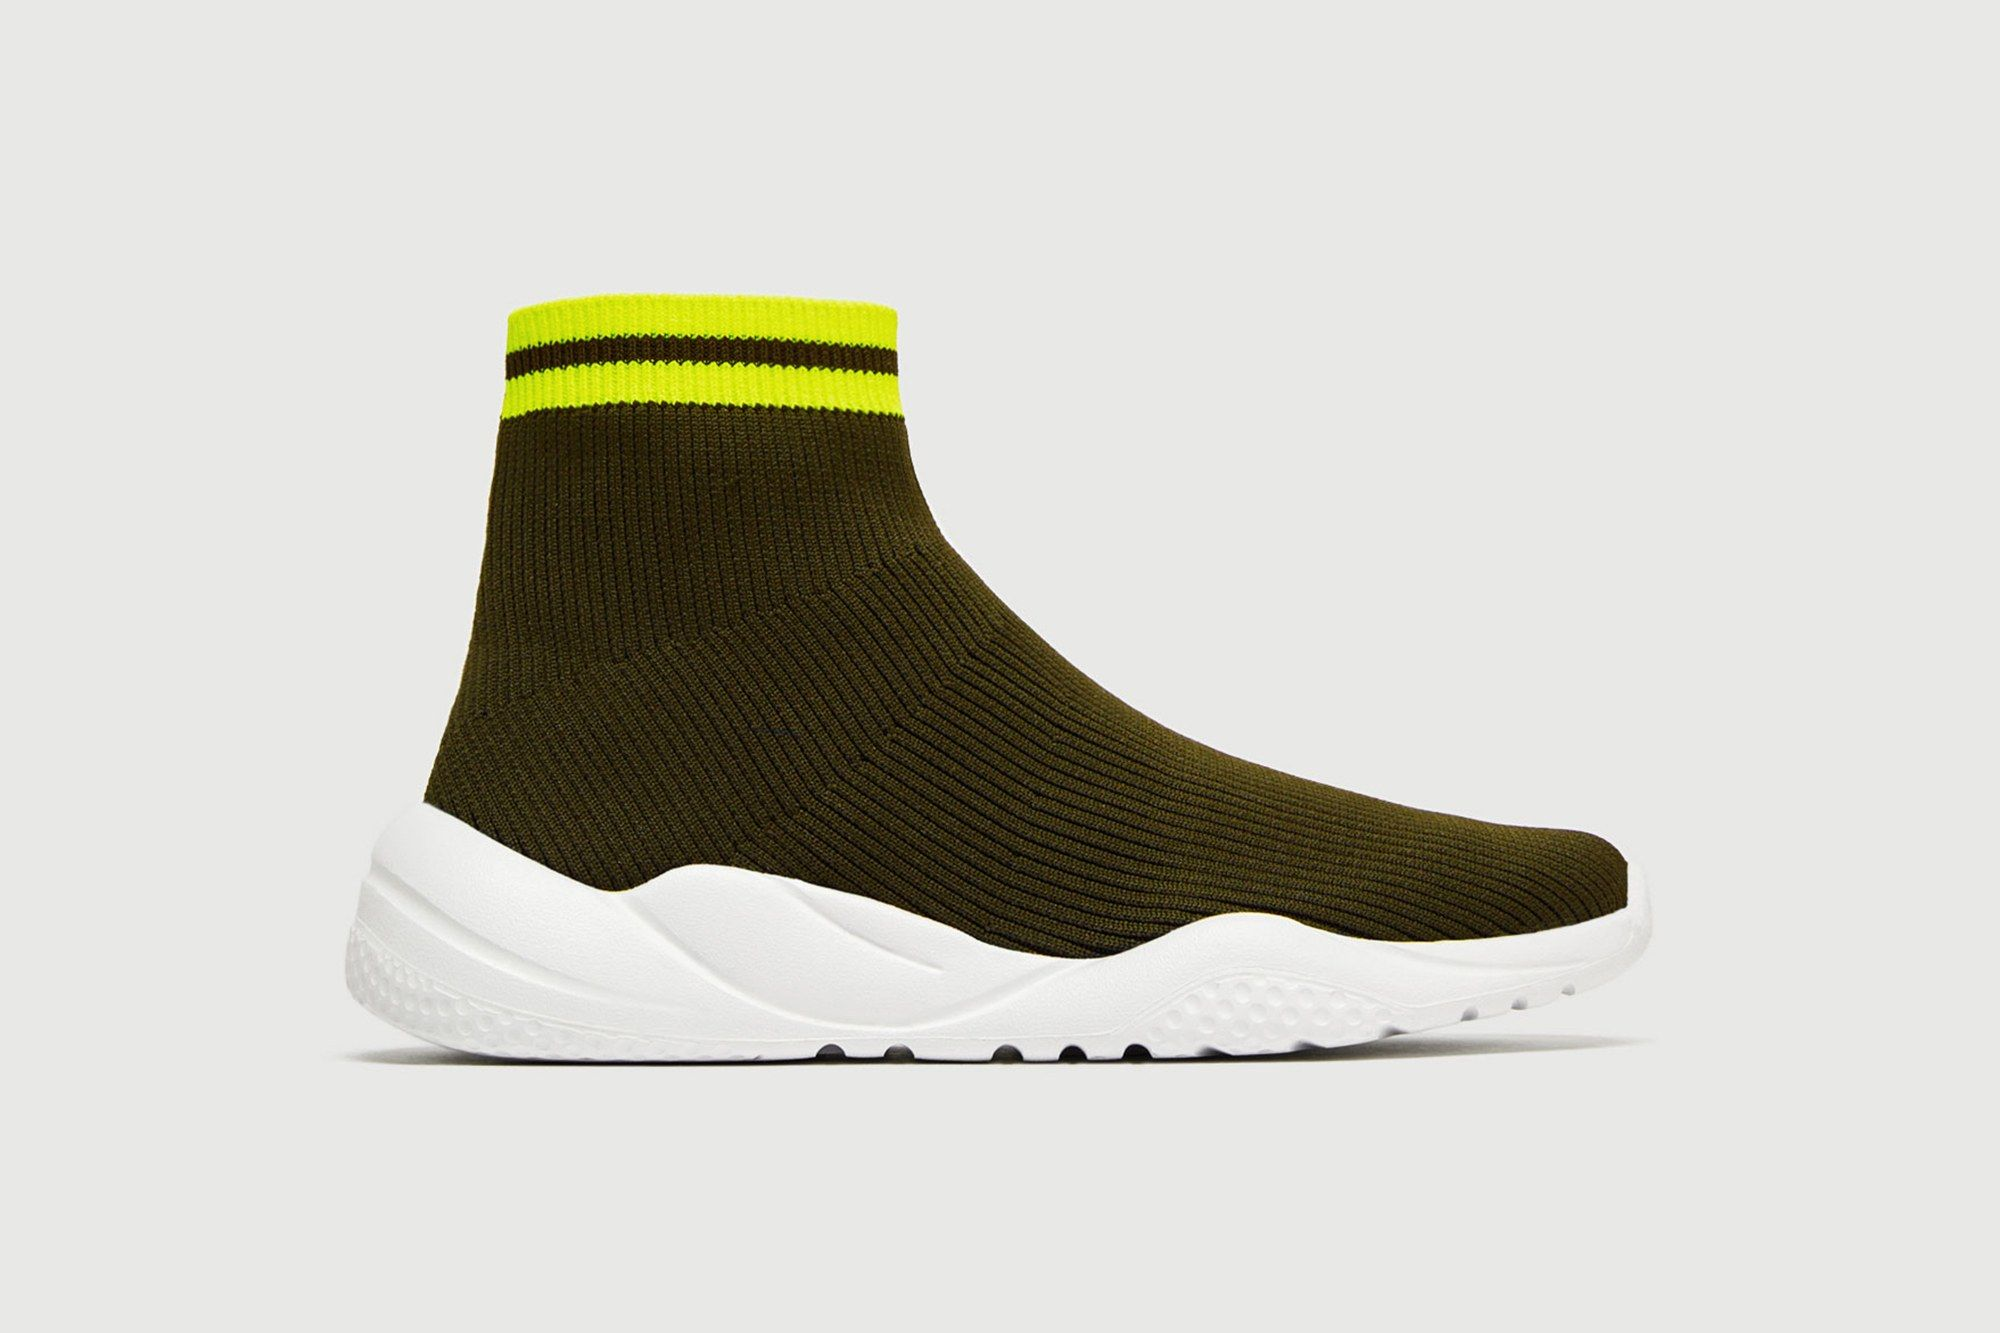 10 Sneakers That Are As Cozy As Your Favorite Socks | GQ